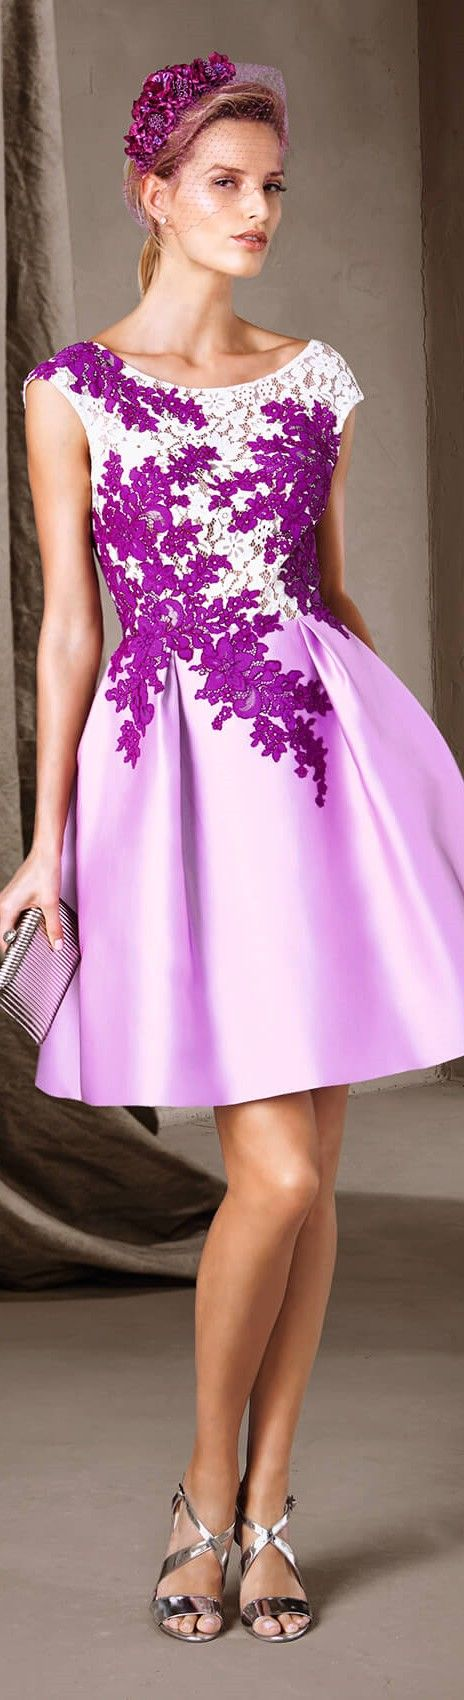 637 best FASHION WOMEN images on Pinterest | Dress skirt, Block ...